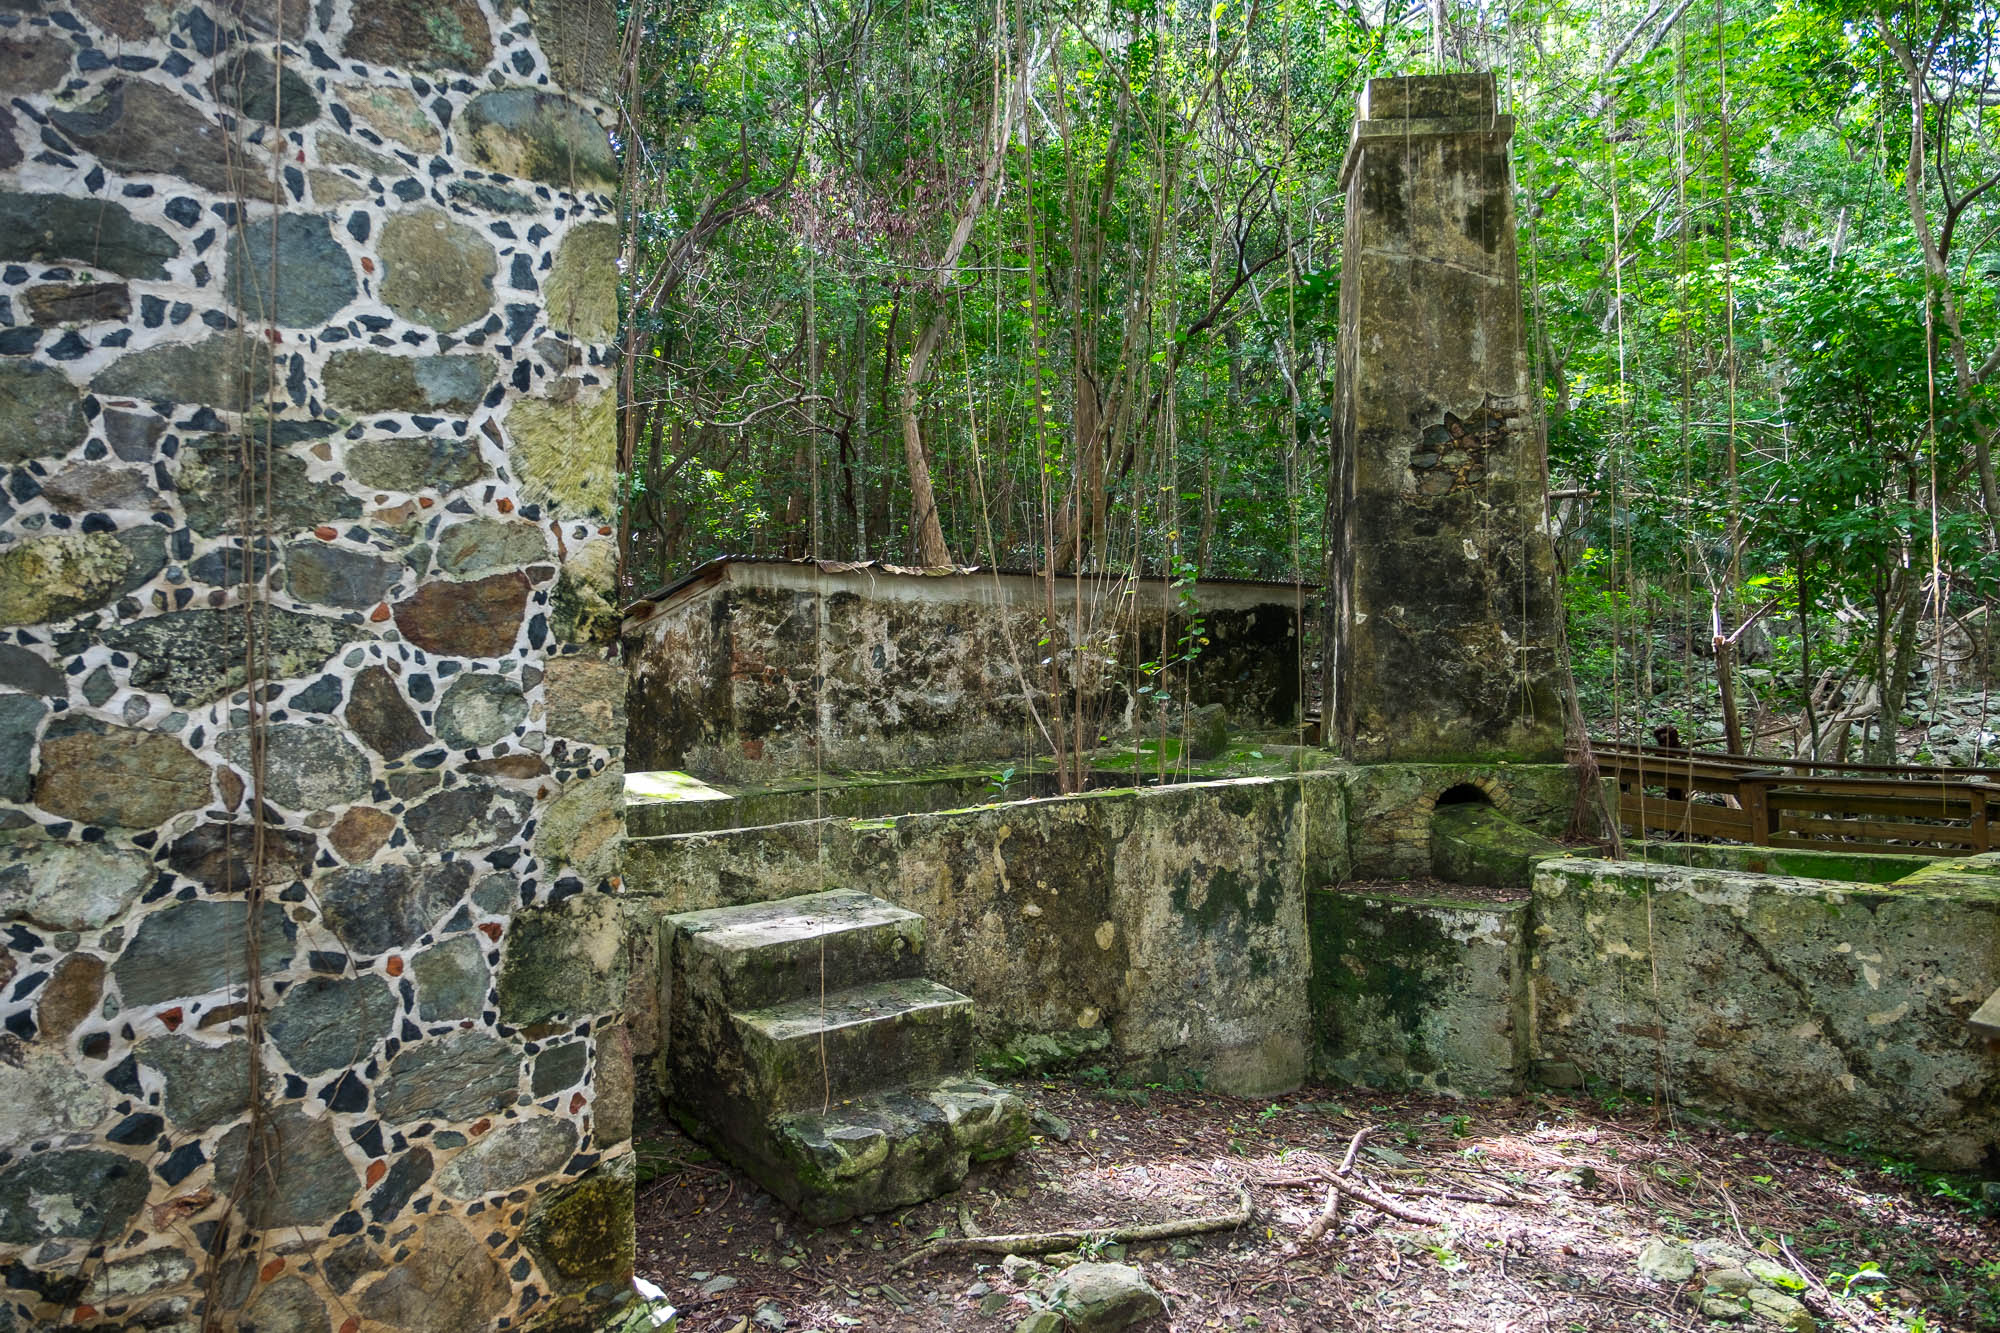 Cinnamon Bay sugarmill ruins....one of the largest and most interesting ruins to explore.